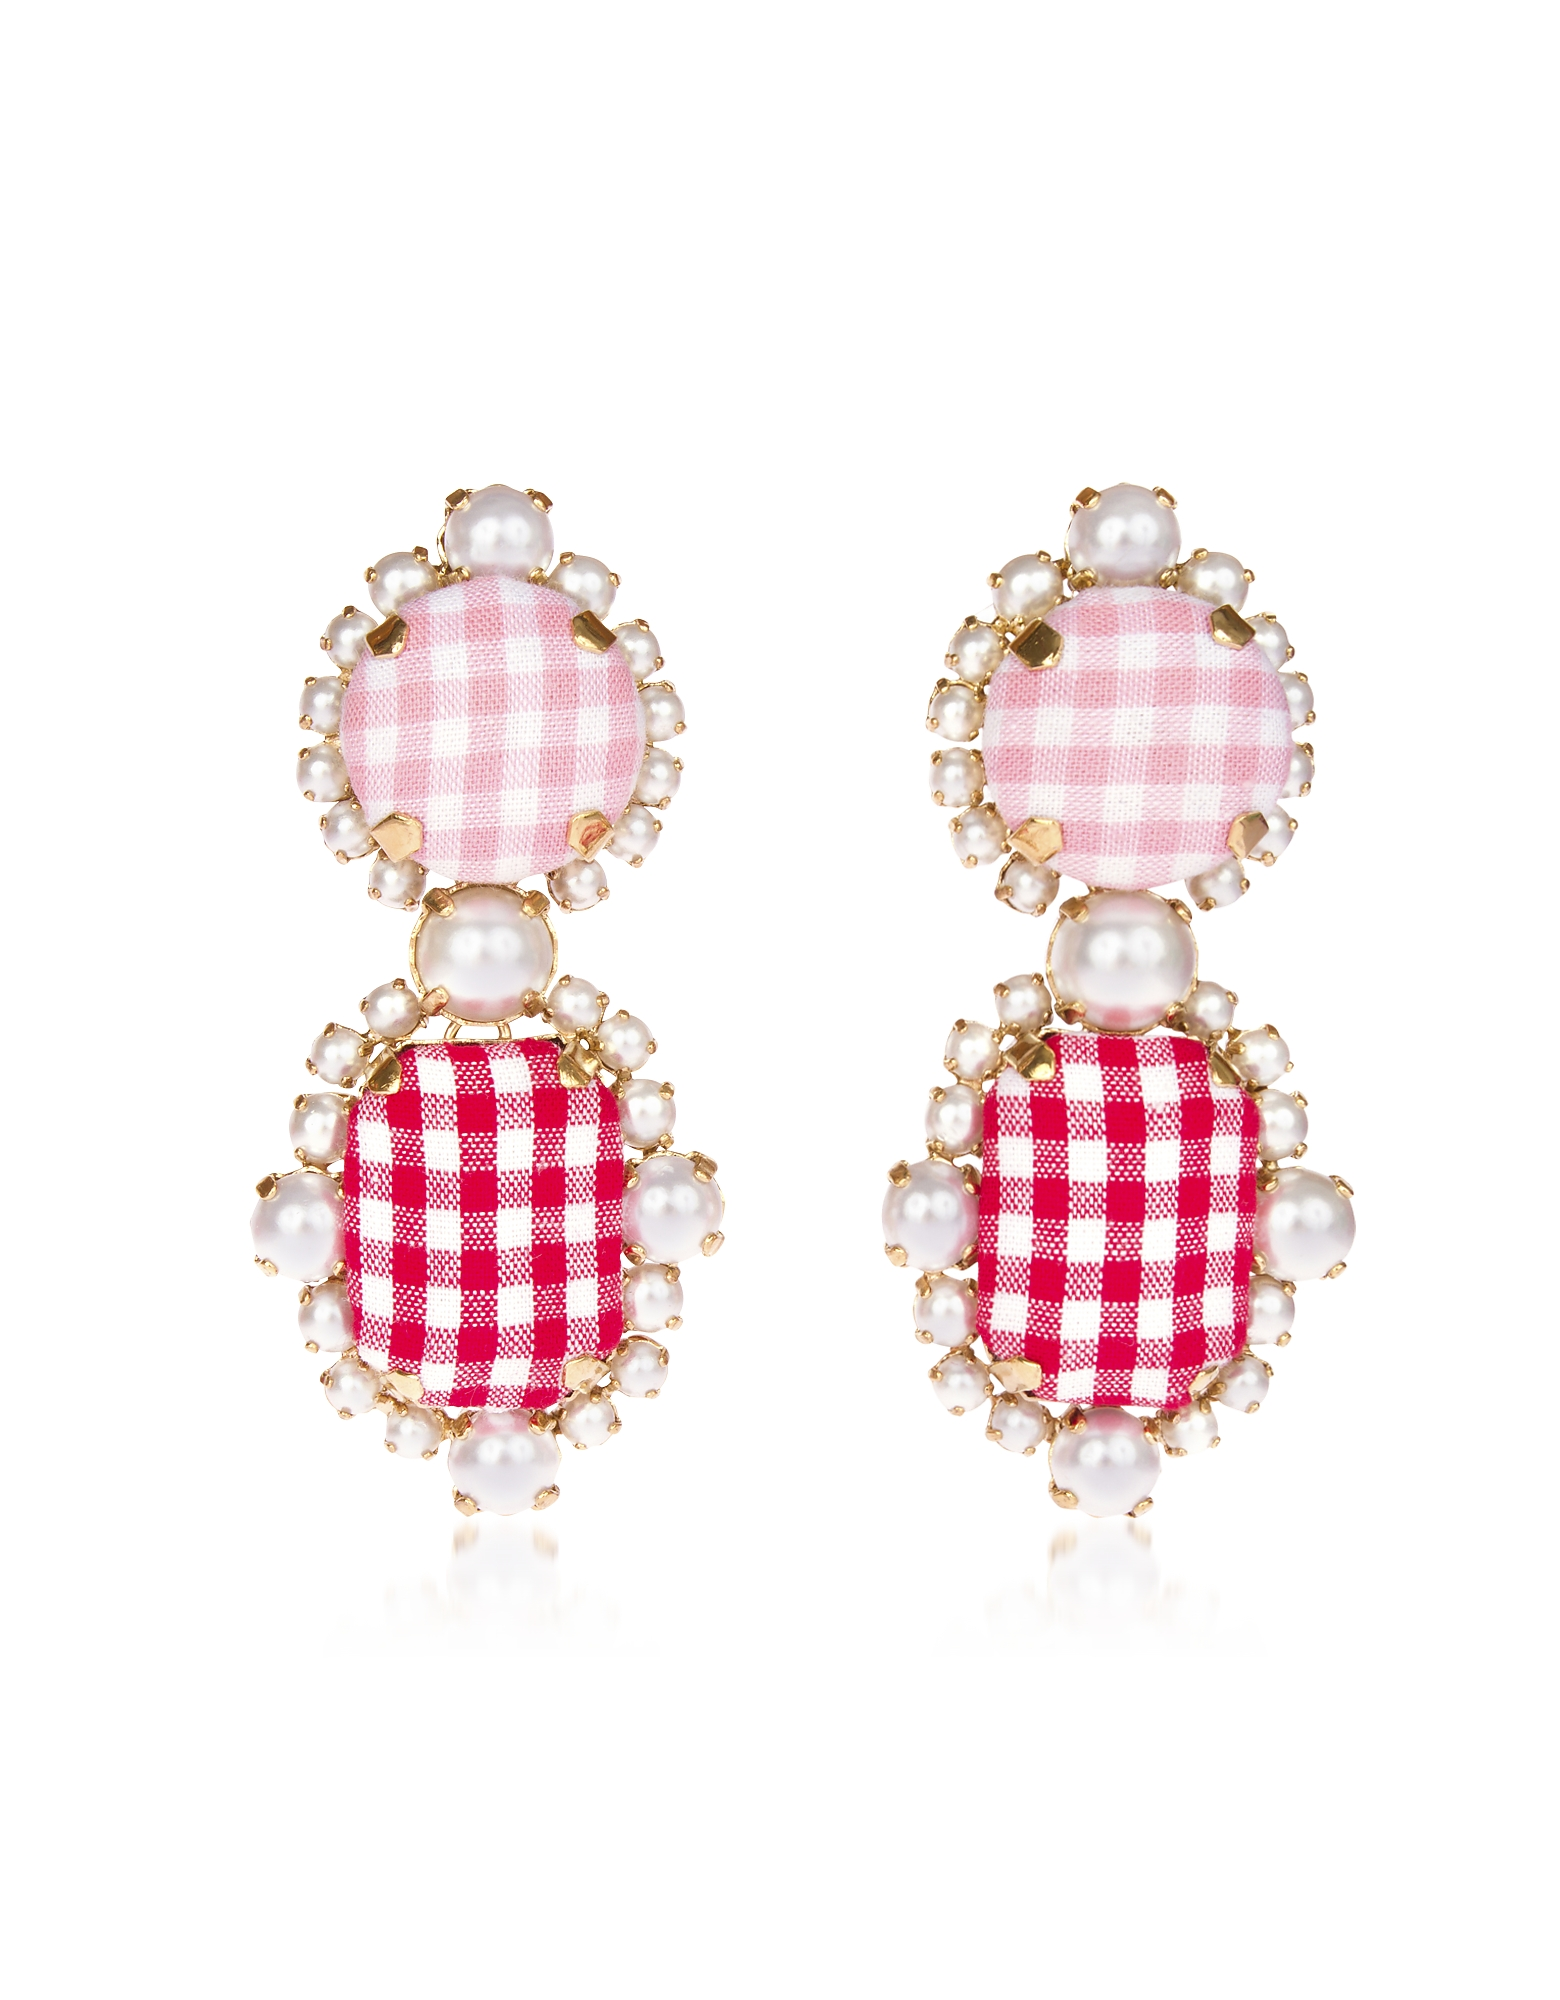 Bijoux de Famille Earrings, Petit Trianon Earrings